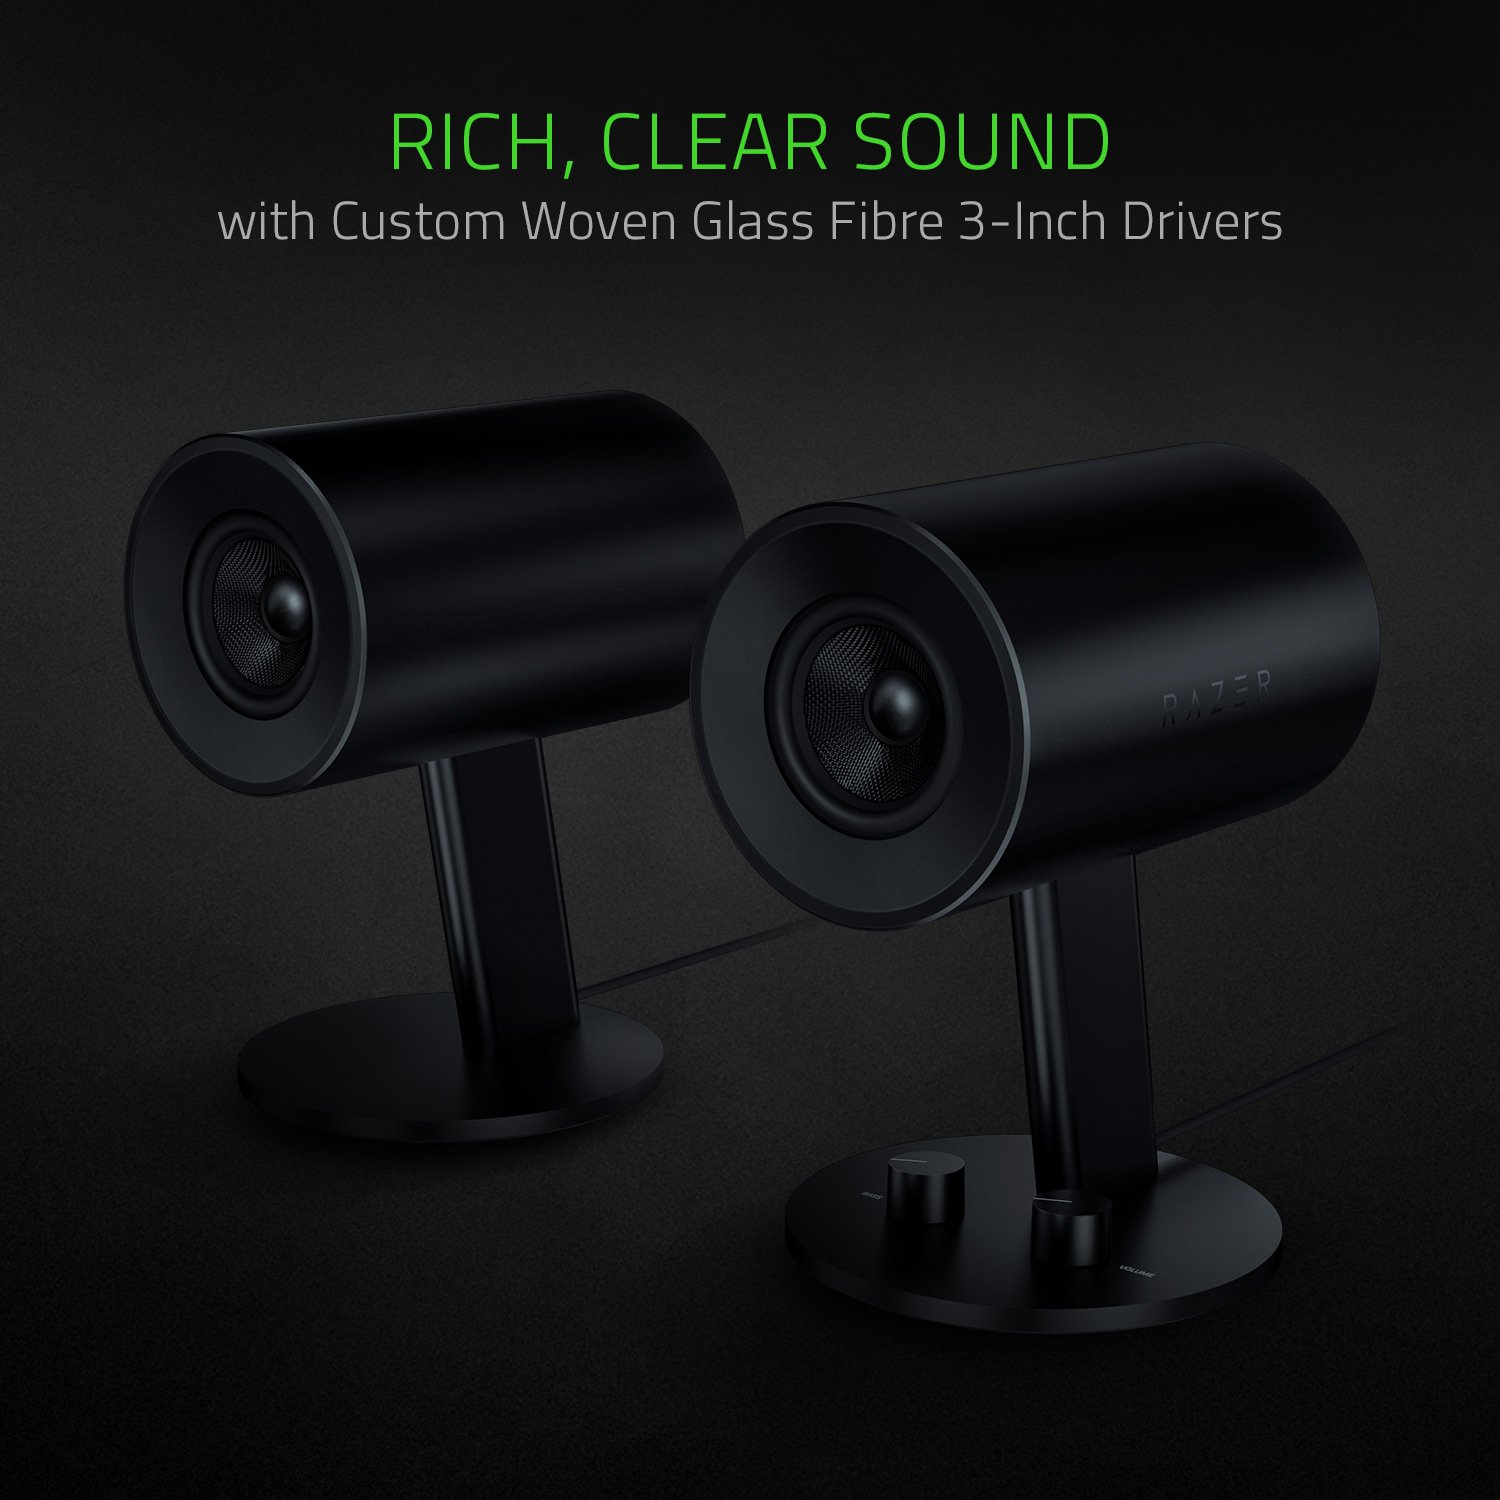 Razer Nommo - Computer Speakers, Rear Bass Ports for Full Range Gaming & Sound Immersion - Custom Woven Glass Fiber 3'' Drivers by Razer (Image #3)